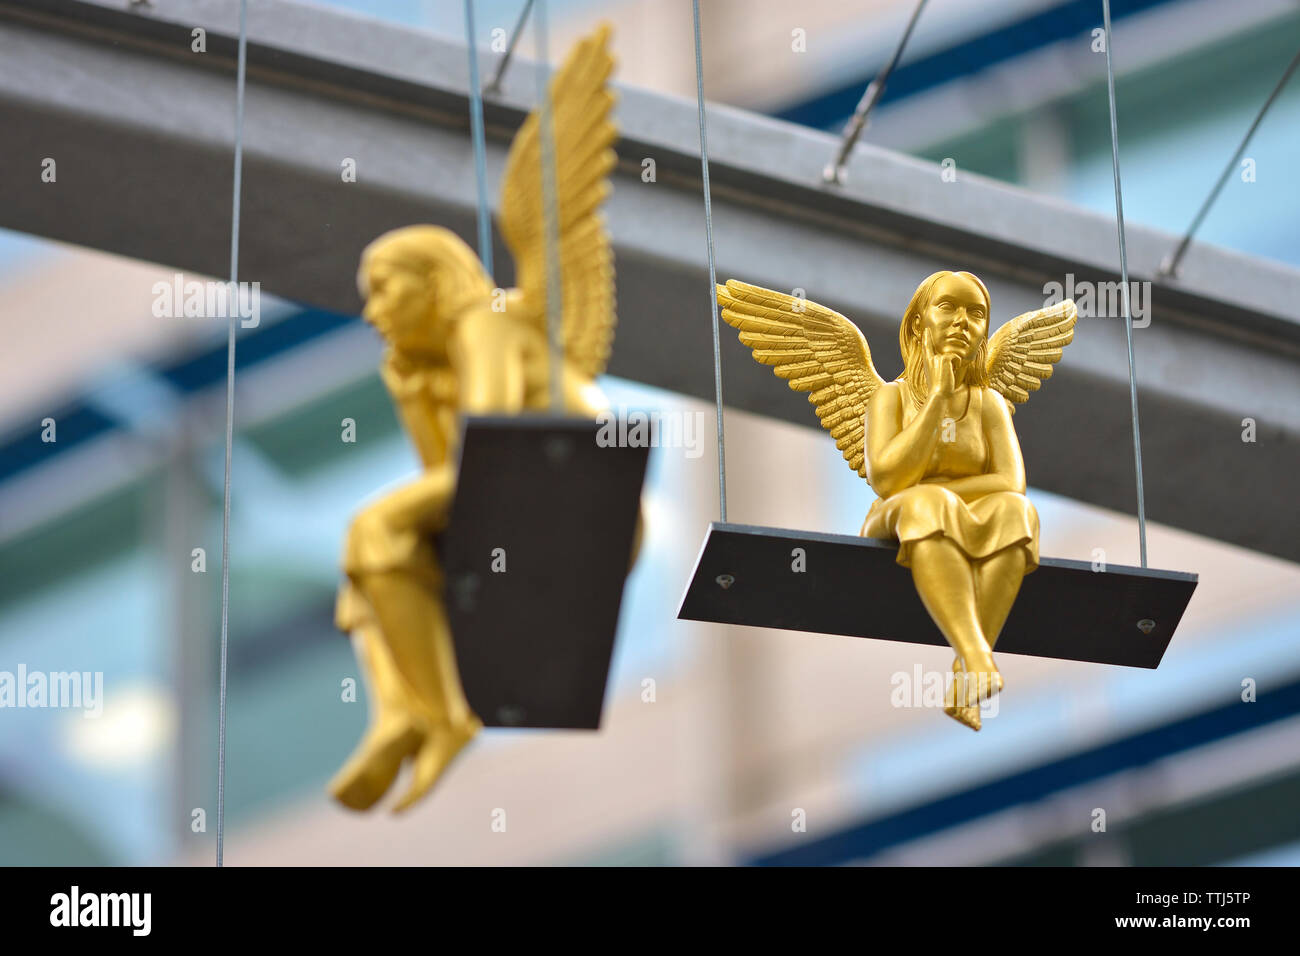 London, England, UK. 'Lunch Break' - art installation by Ottmar Horl, consisting of 40 golden angels on swings outside St Paul's Cathedral (on view 3 - Stock Image